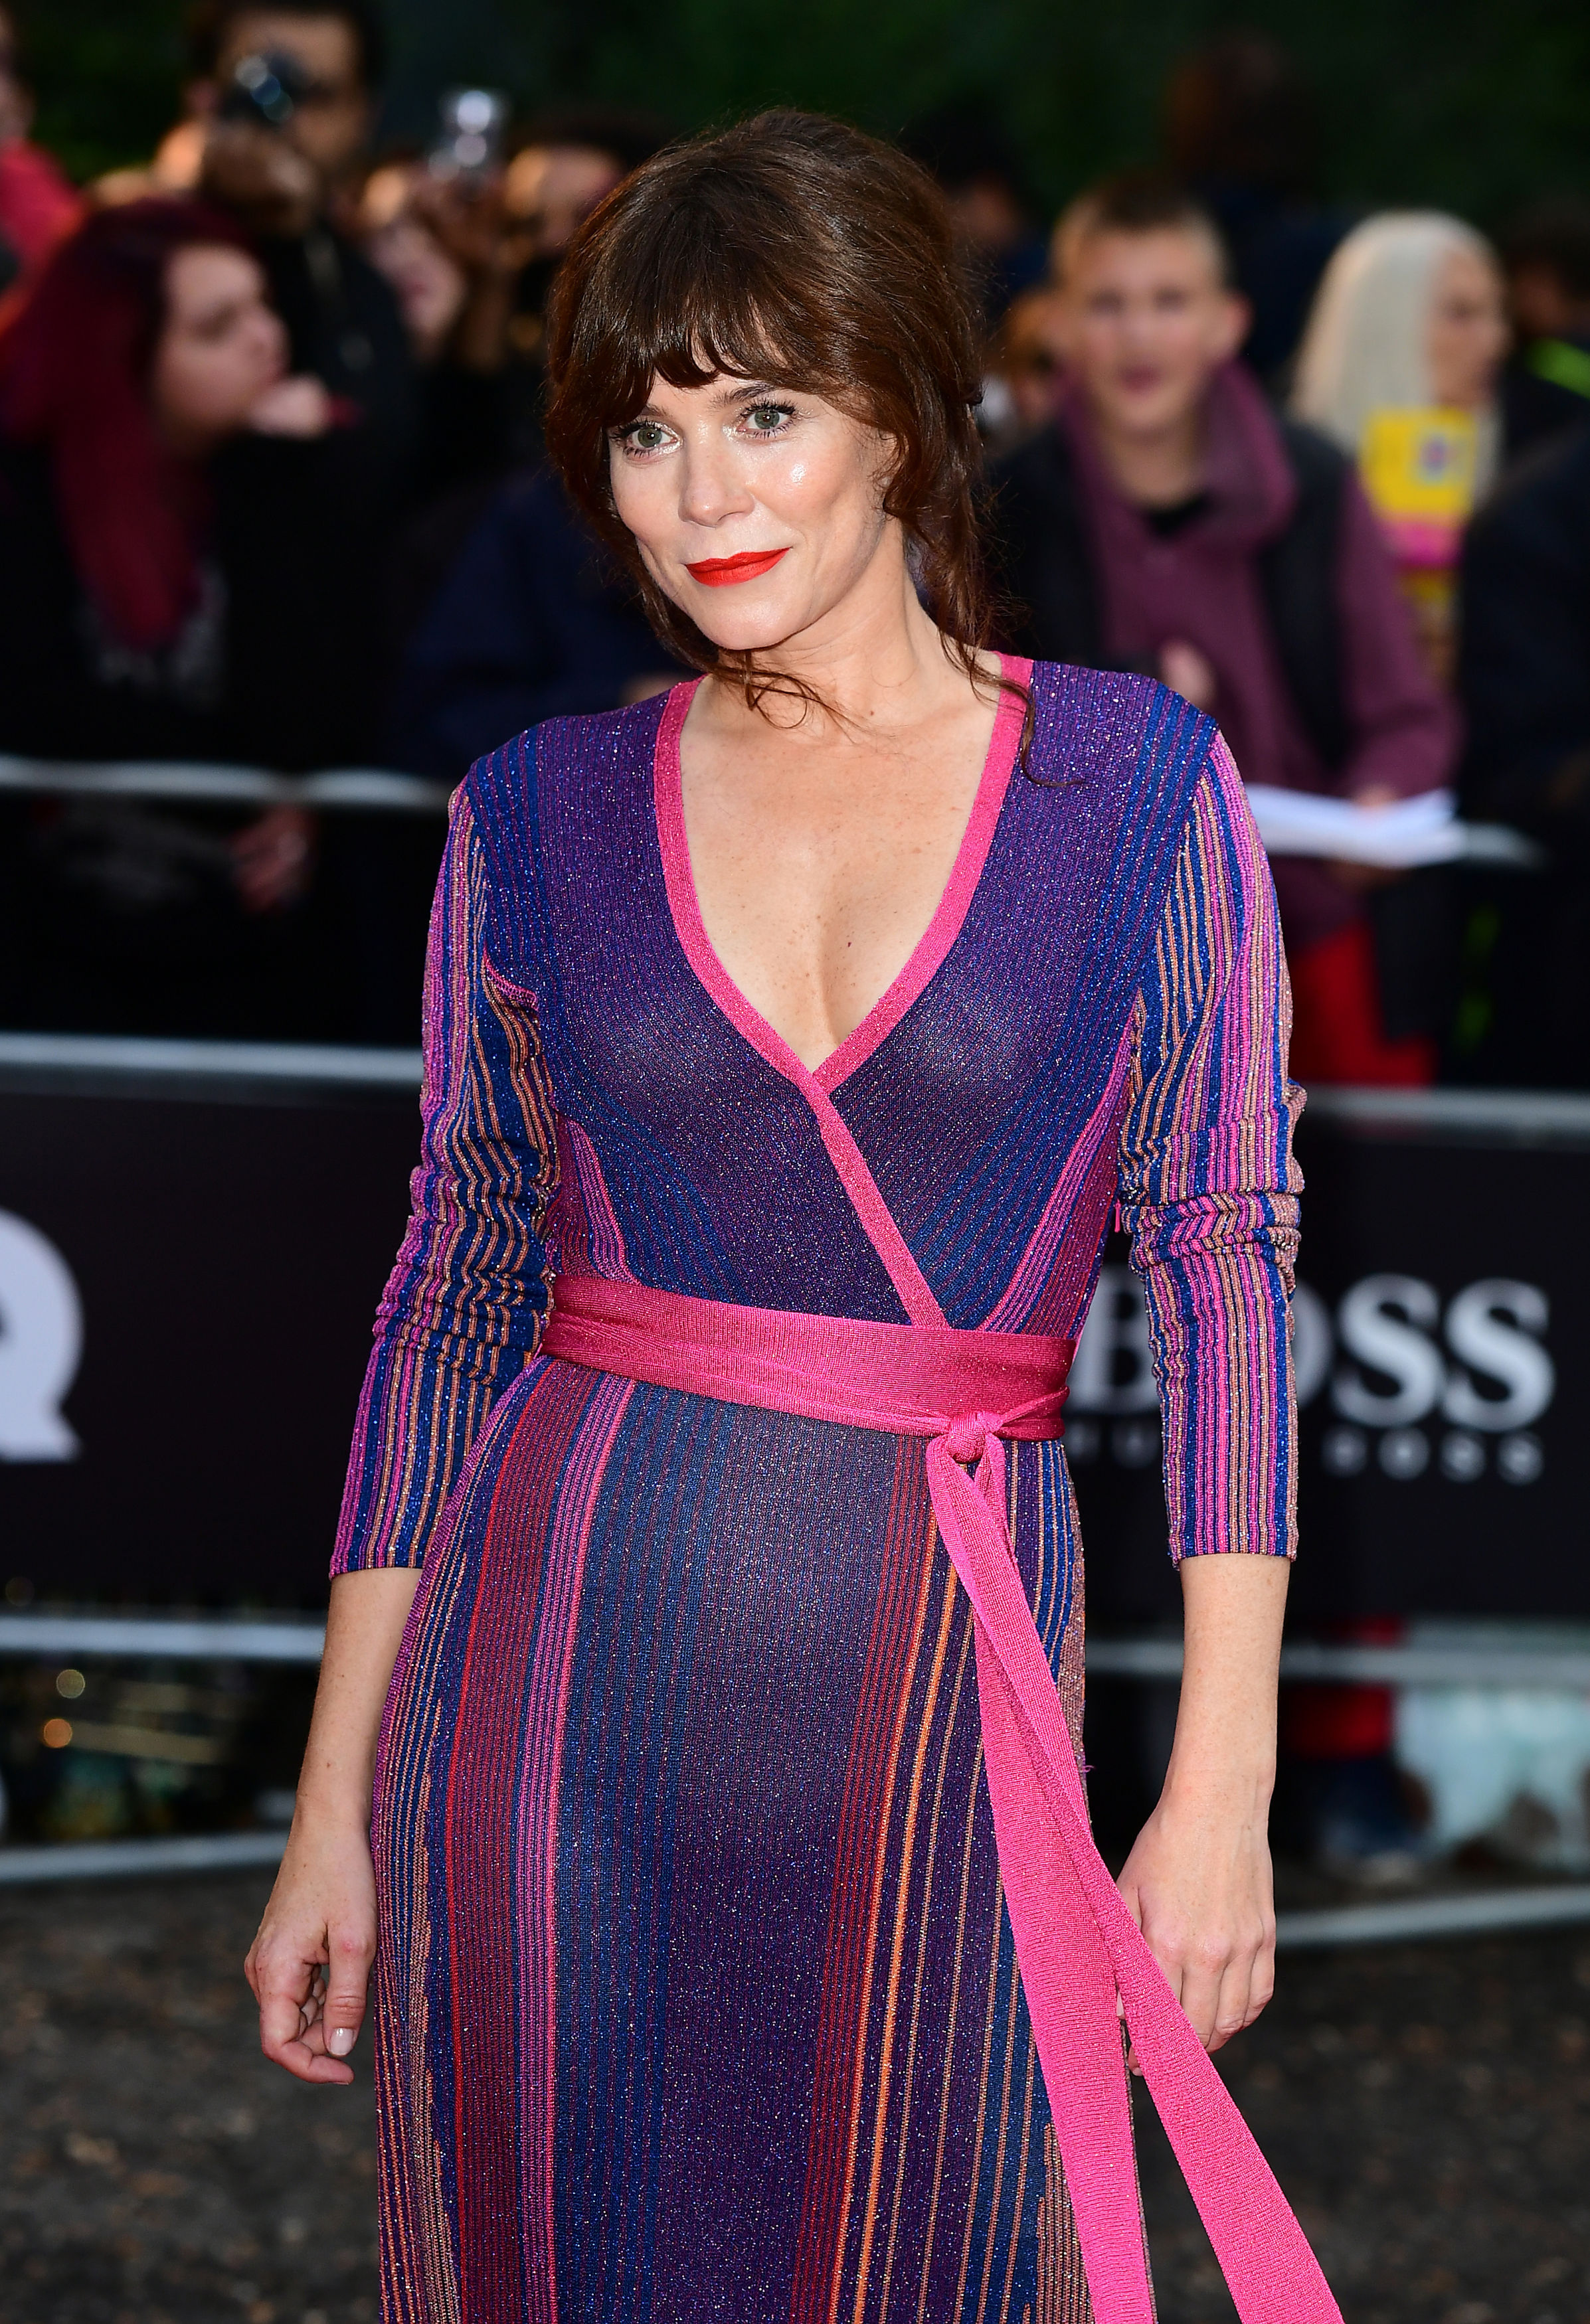 Cleavage Pictures Anna Friel naked photo 2017